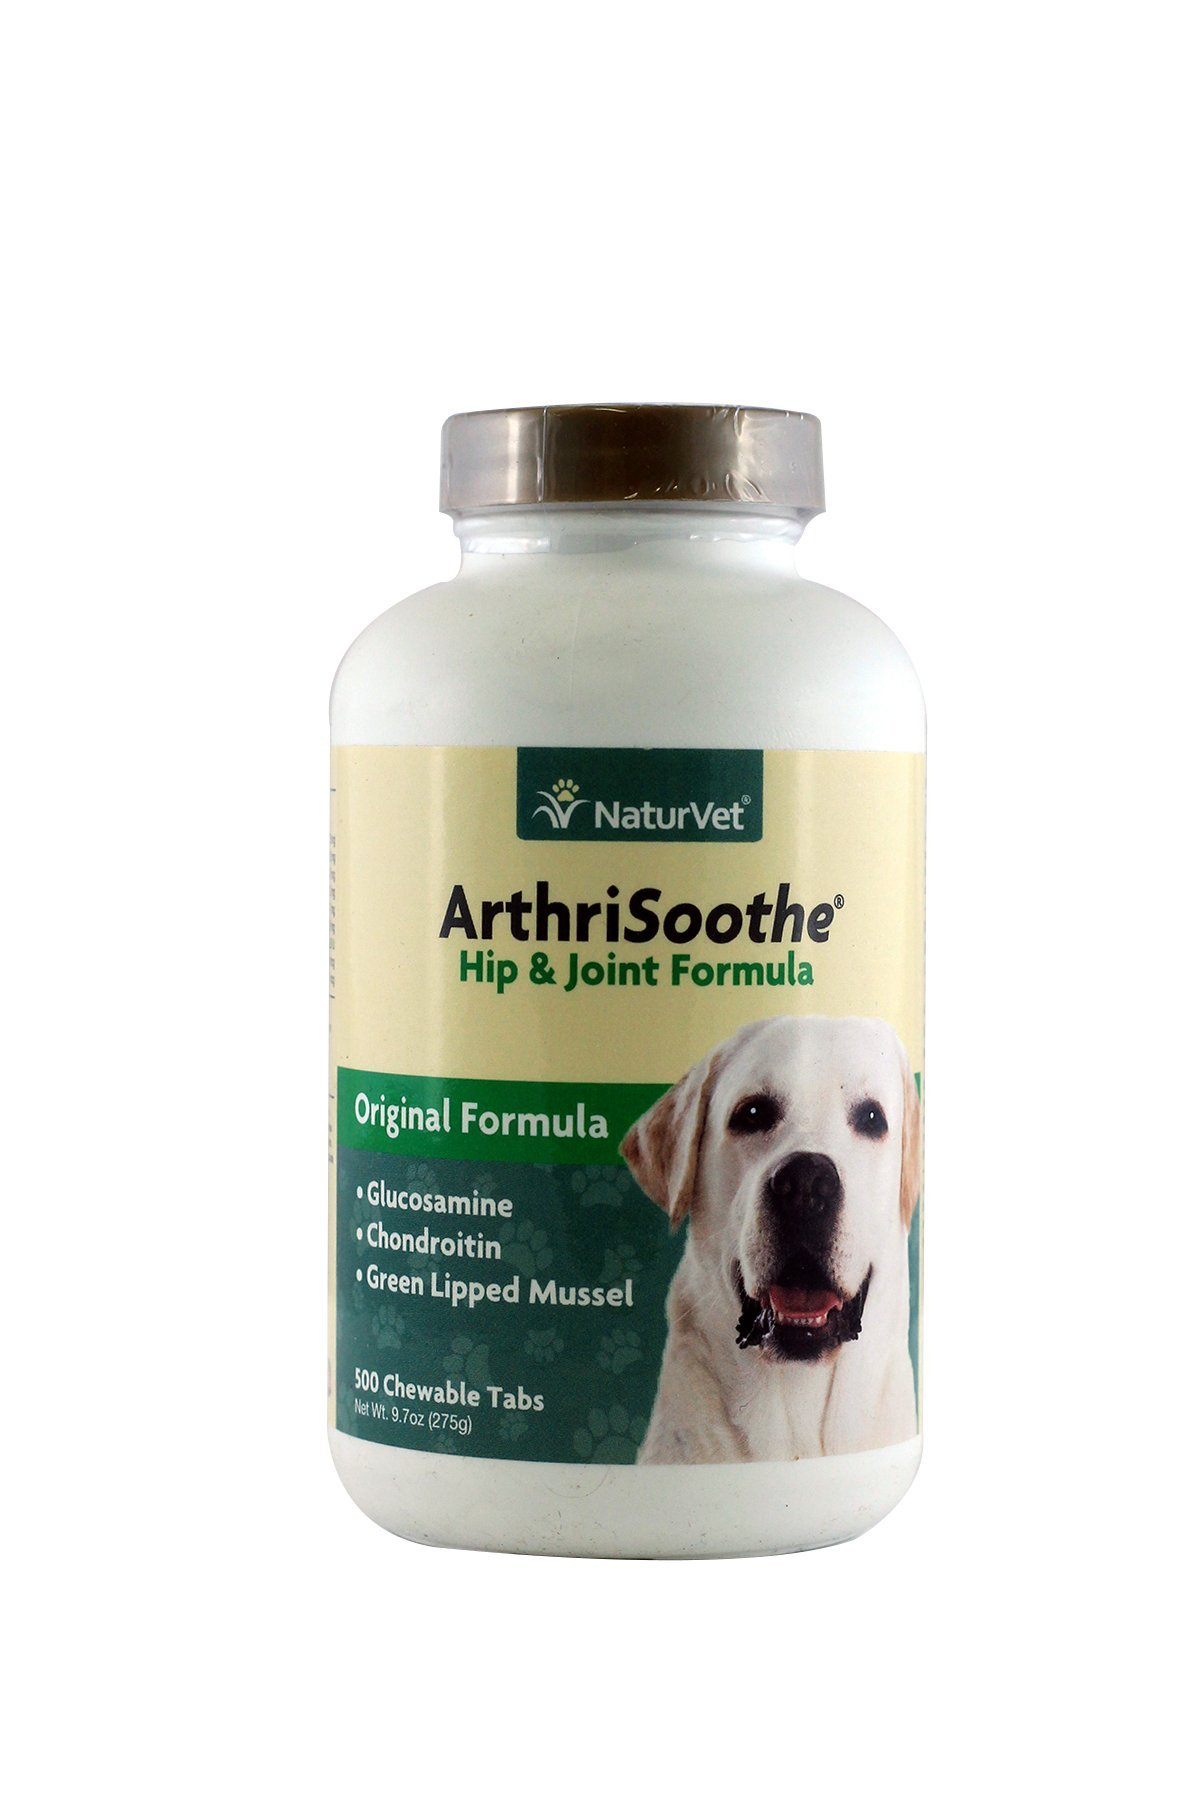 NaturVet 500 Count ArthriSoothe Tablets for Pets